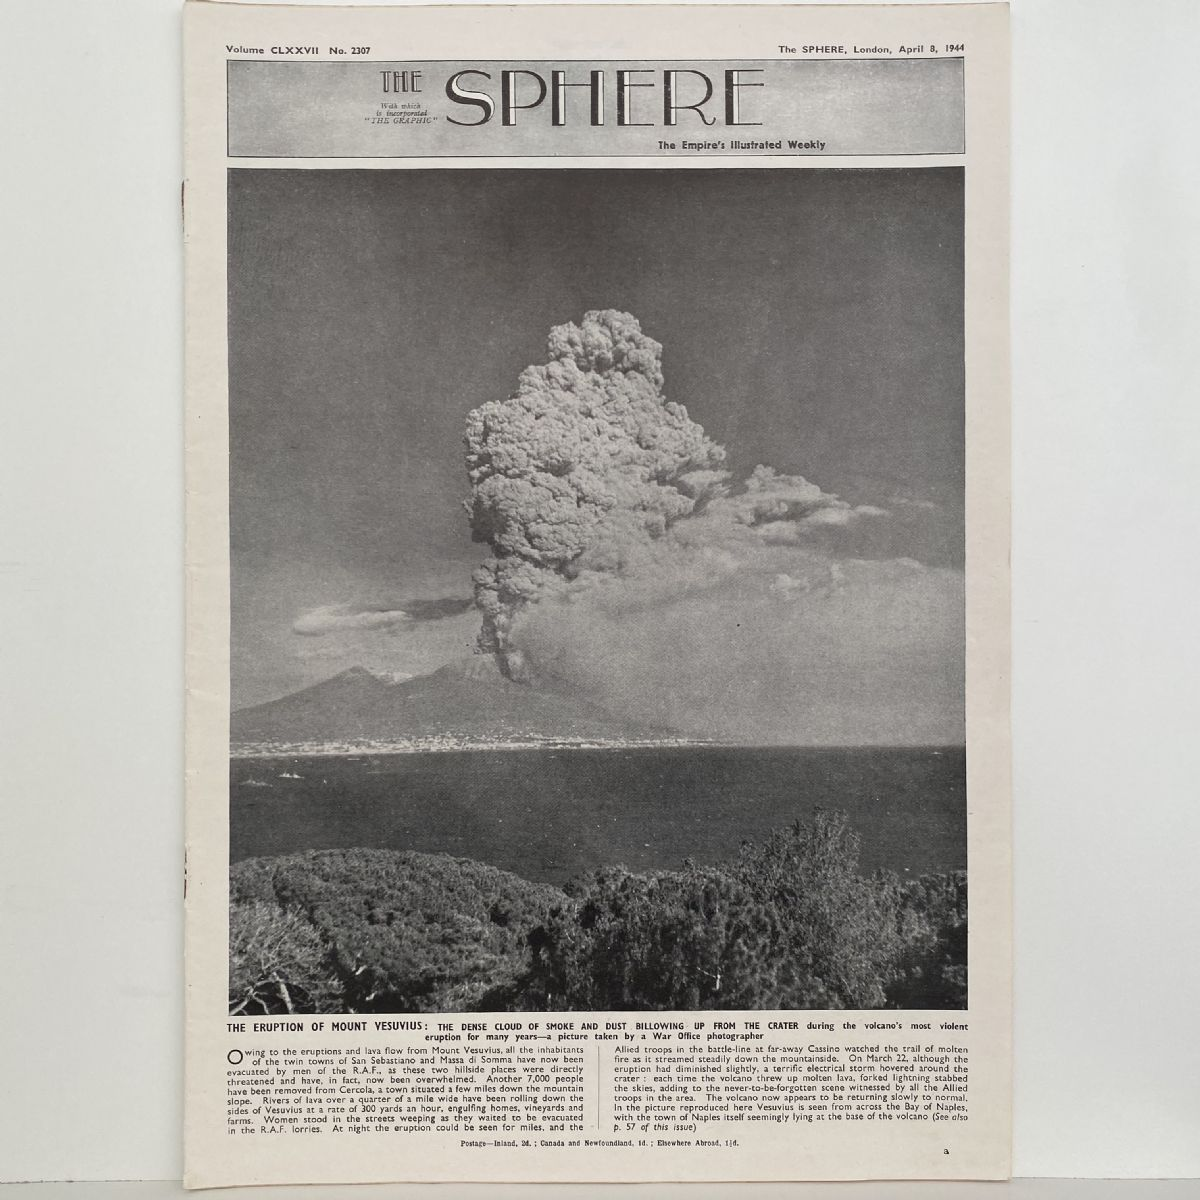 THE SPHERE The Empire's Illustrated Weekly. April 8,1944. No. 2307